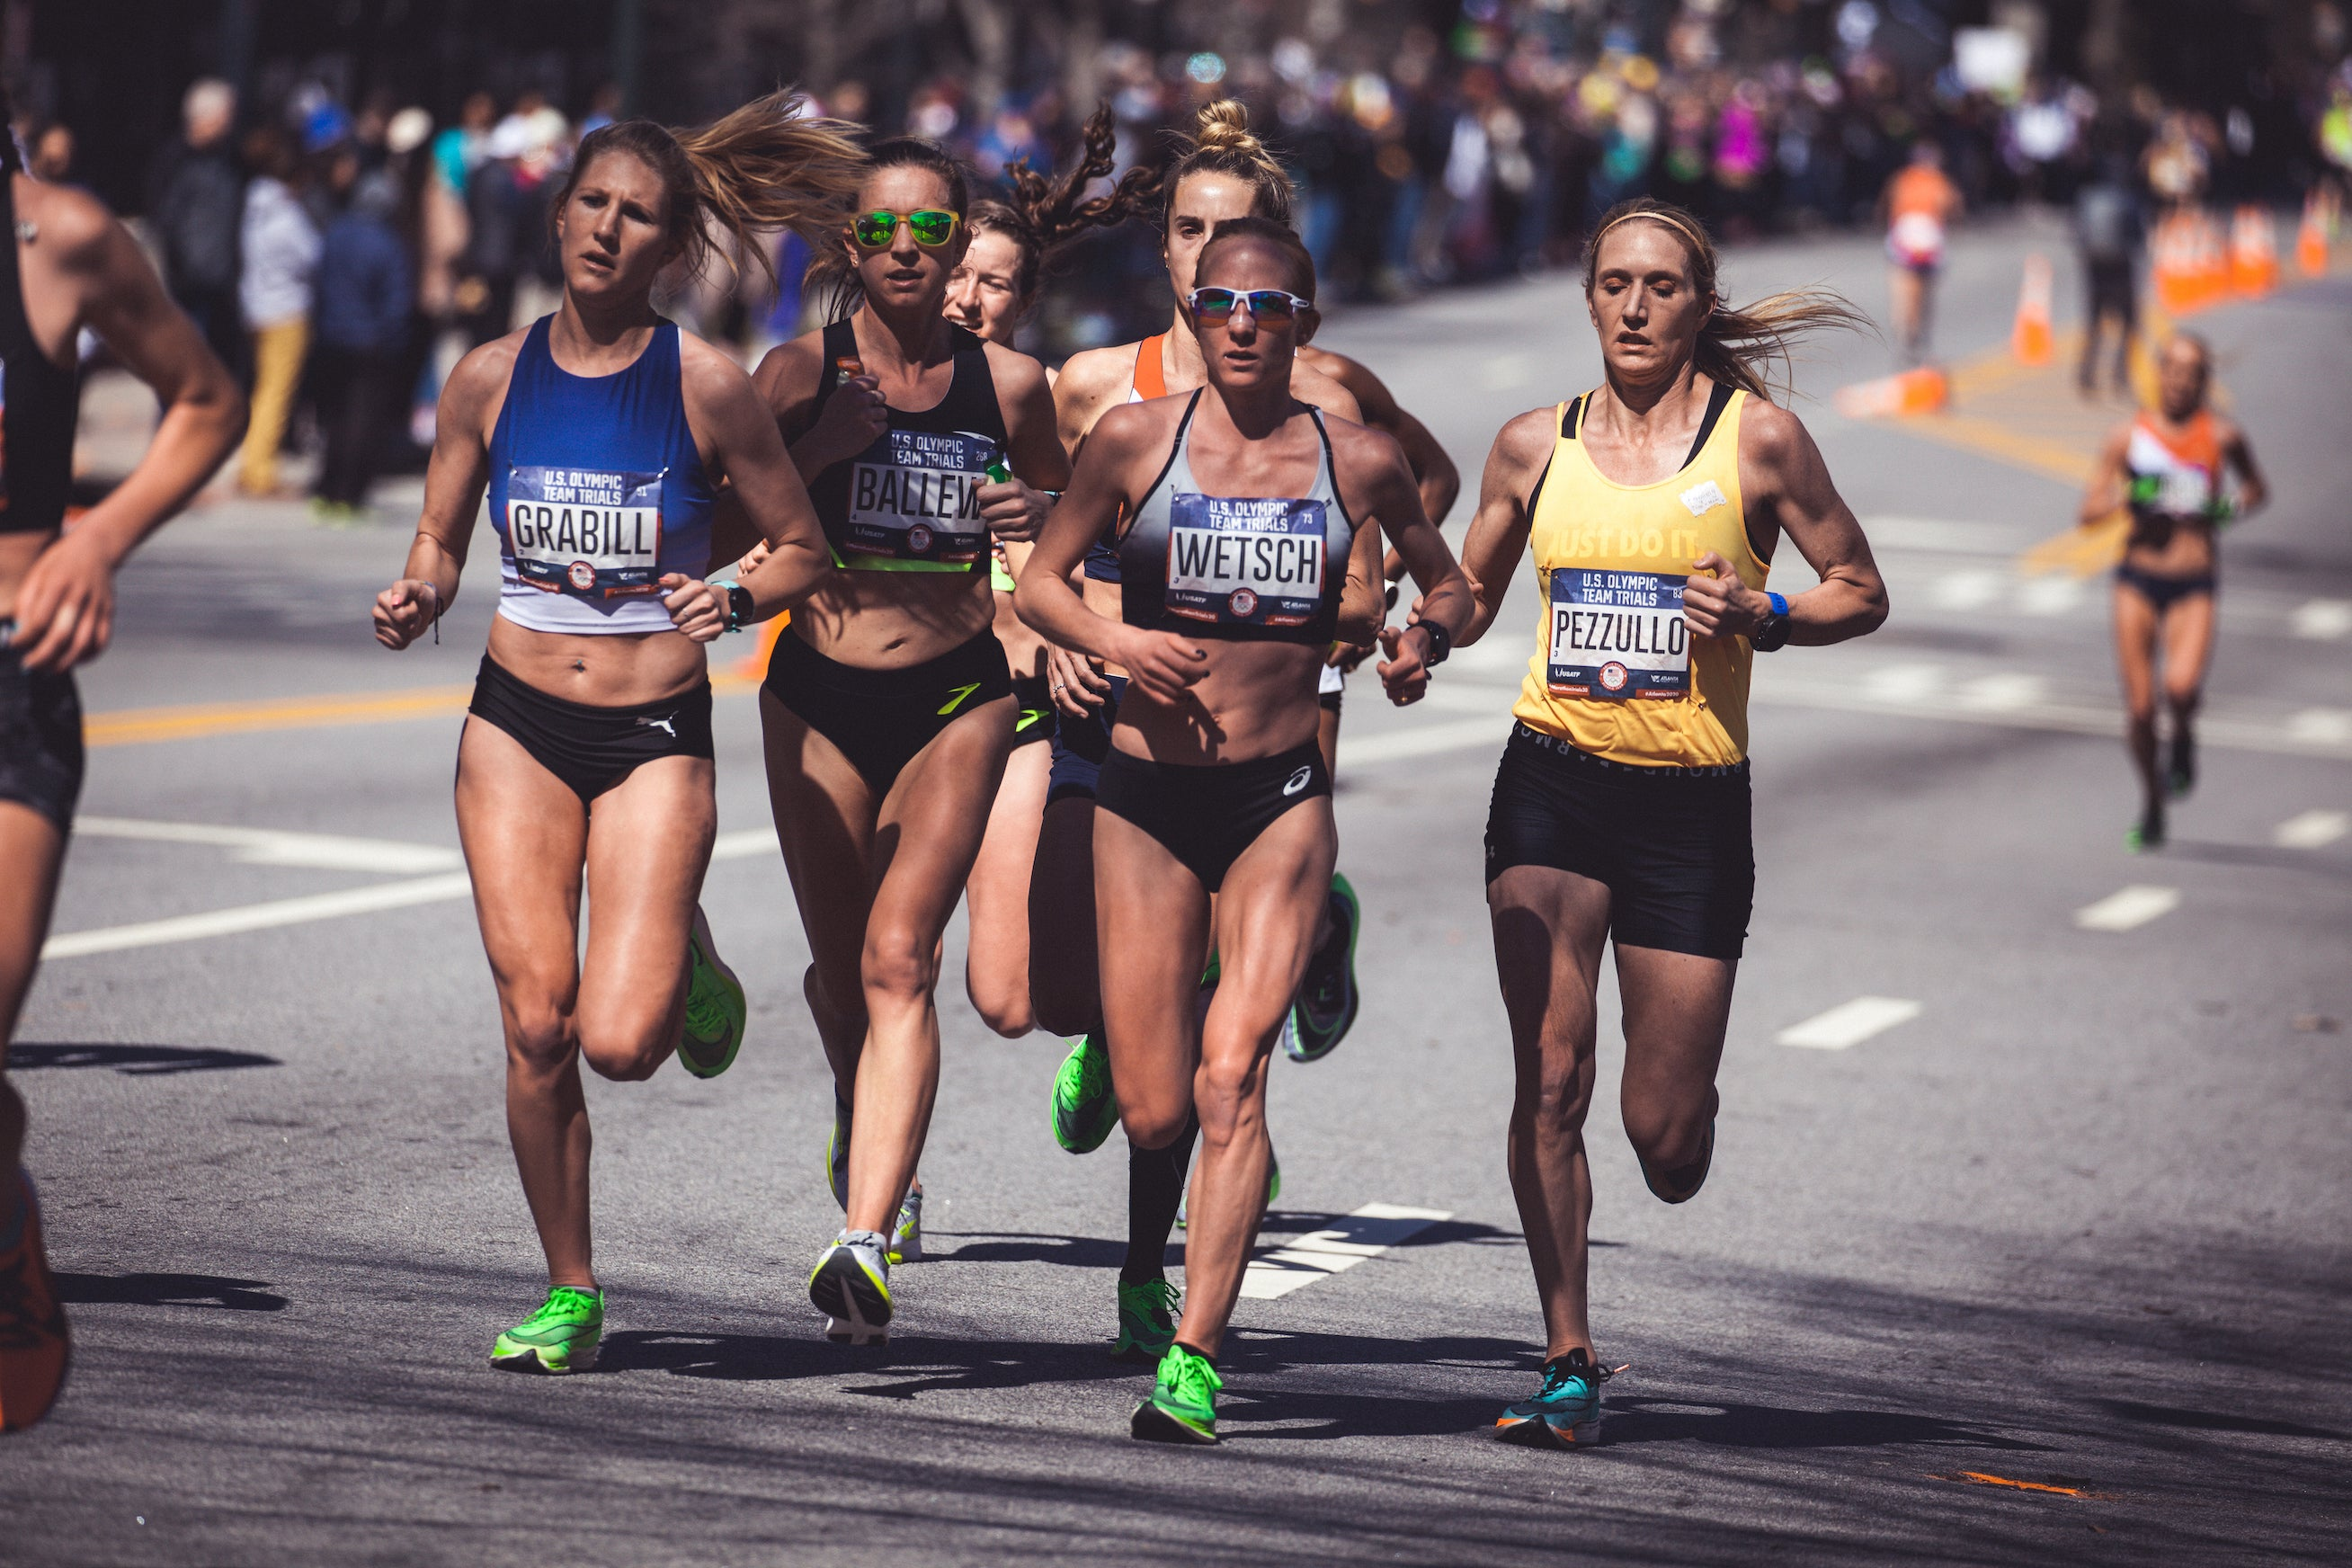 2020 U.S. Olympic Marathon Trials